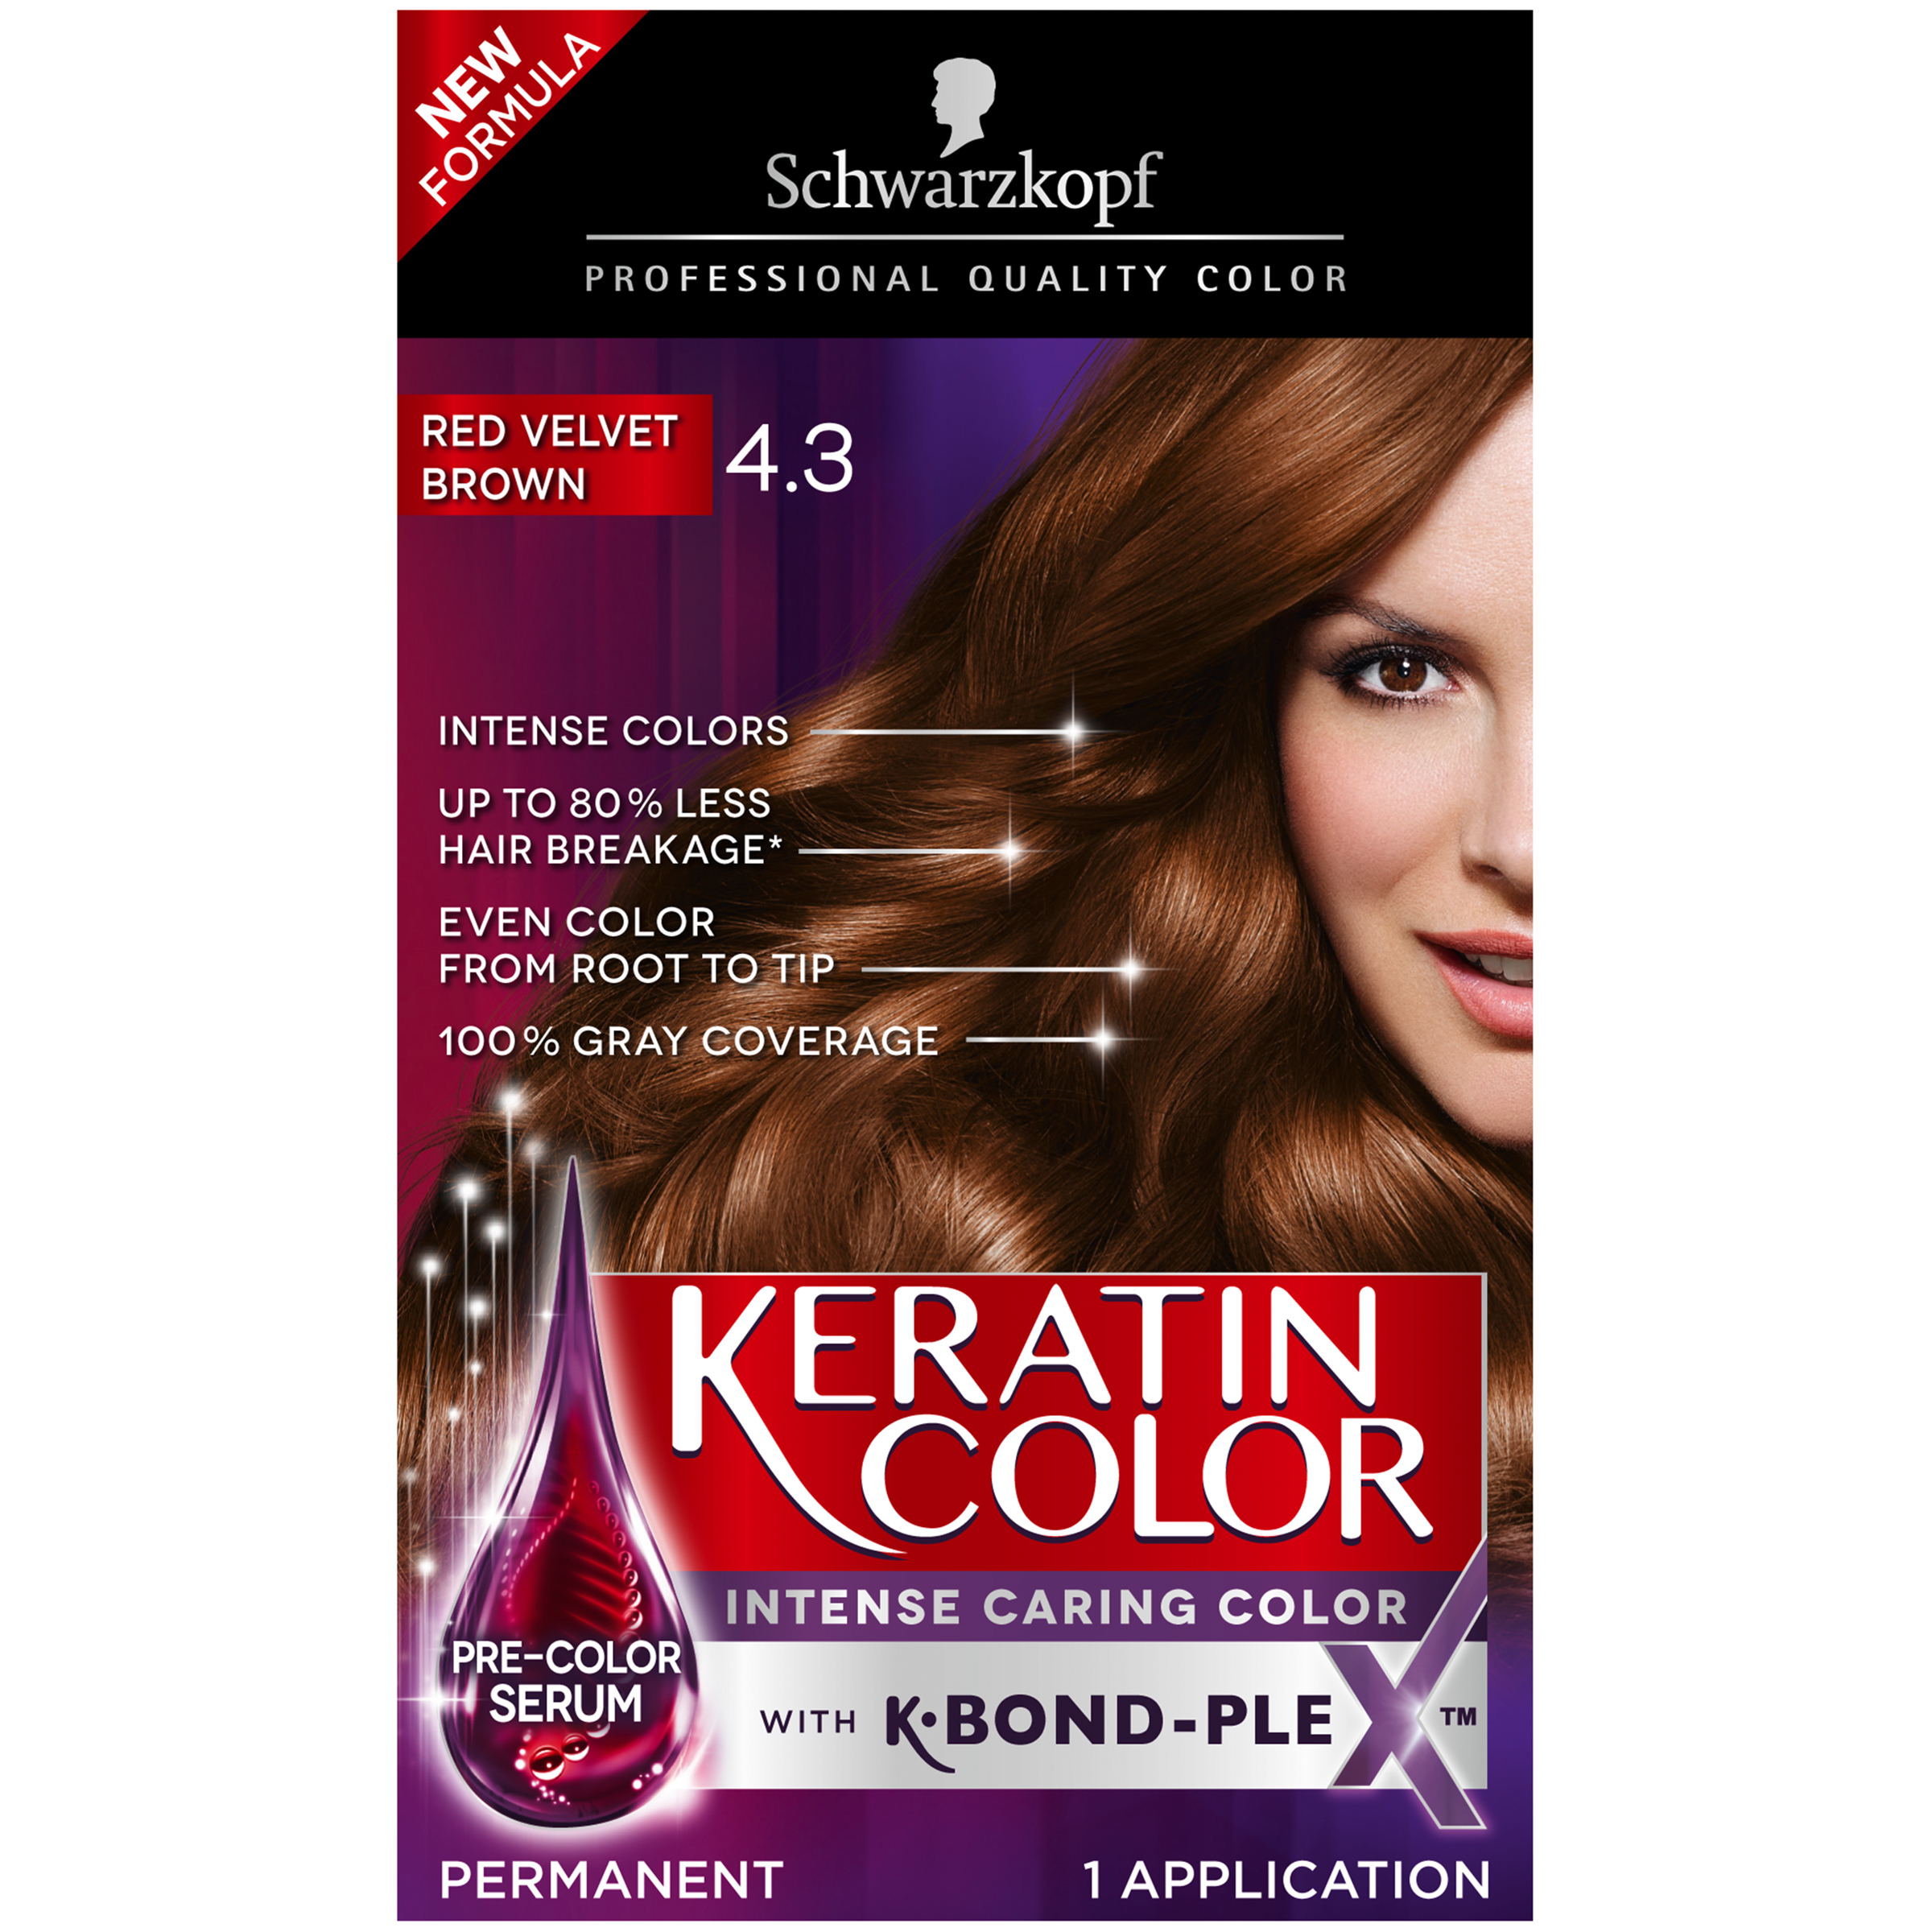 Schwarzkopf Keratin Color Permanent Hair Color Cream 55 Cashmere